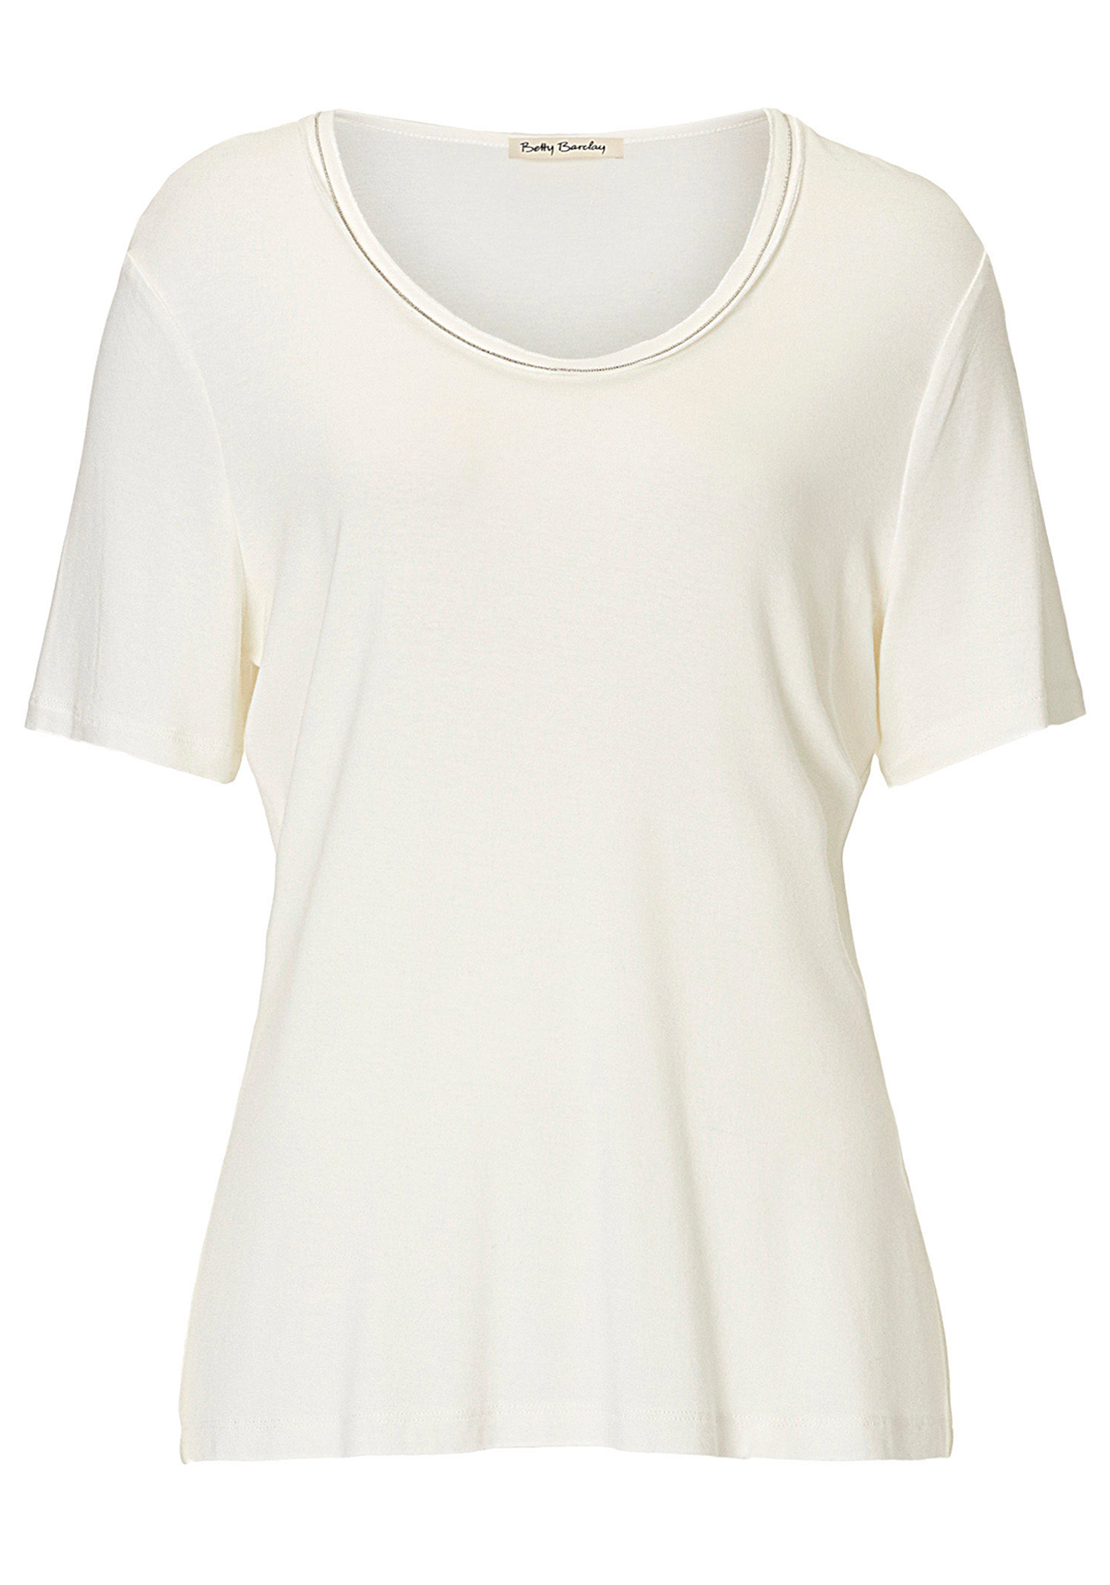 Betty Barclay Stud Trim Short Sleeve T-Shirt, White